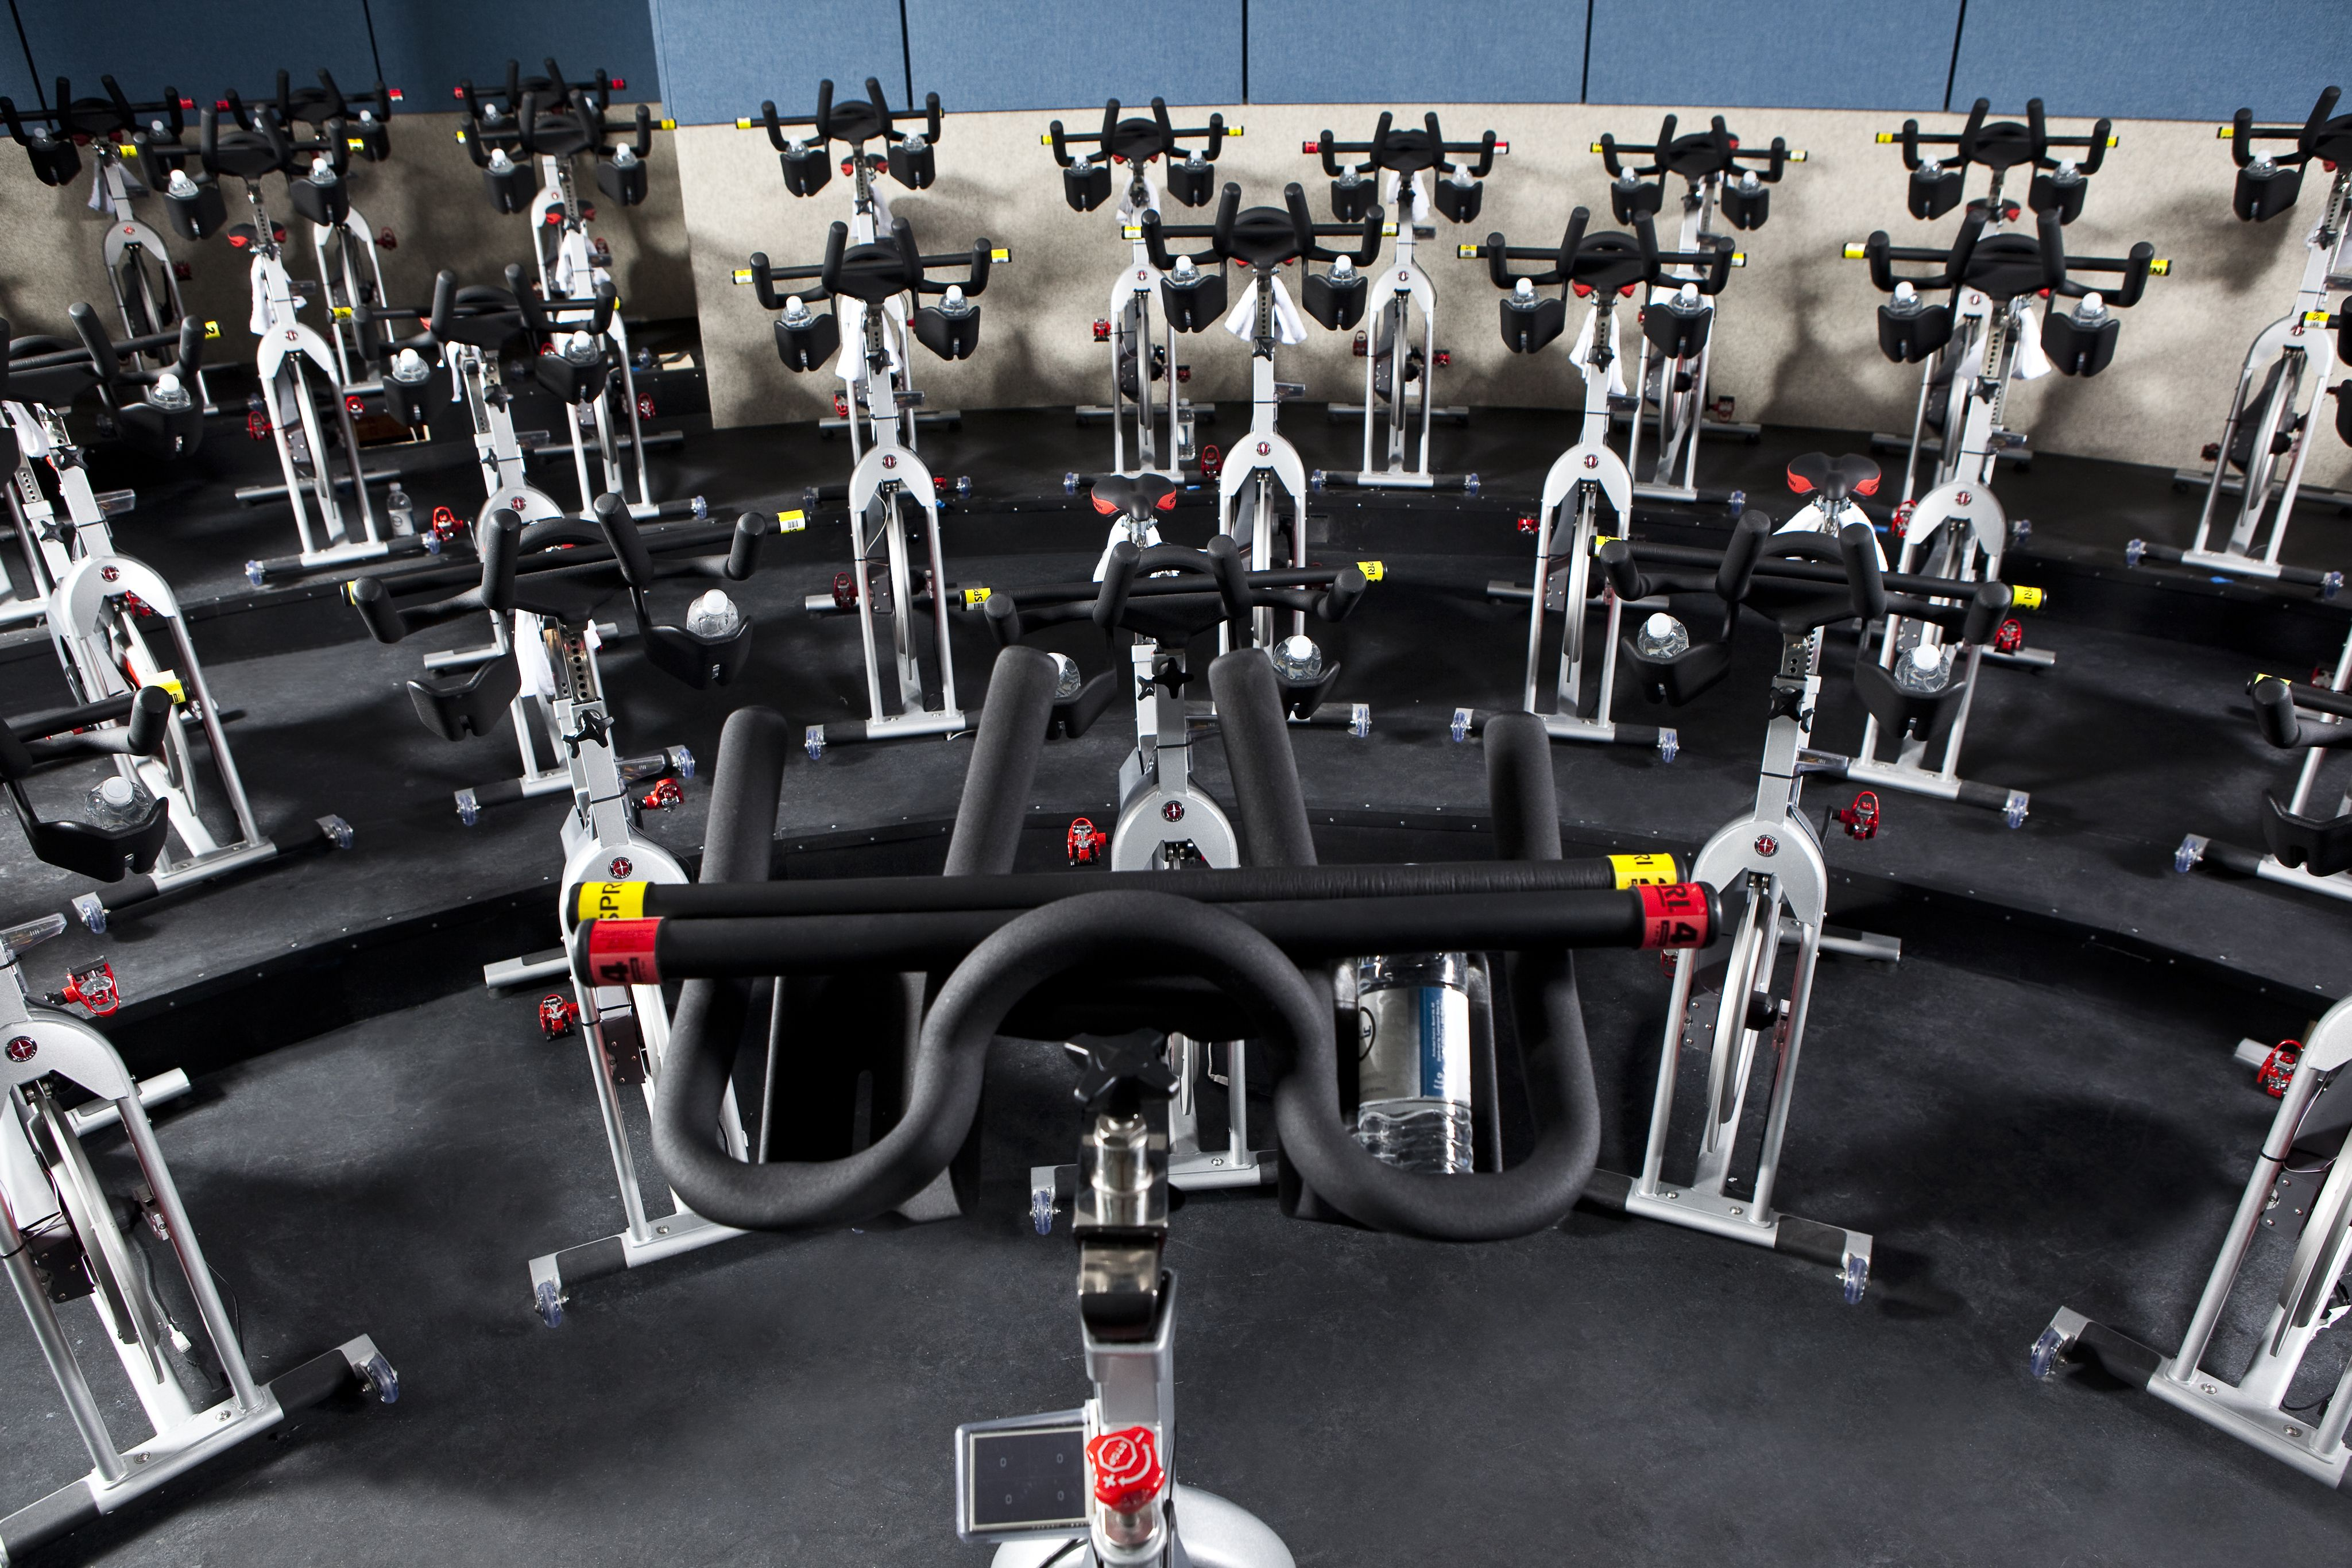 Flywheel Sports, the new indoor cycling studio founded by former ...